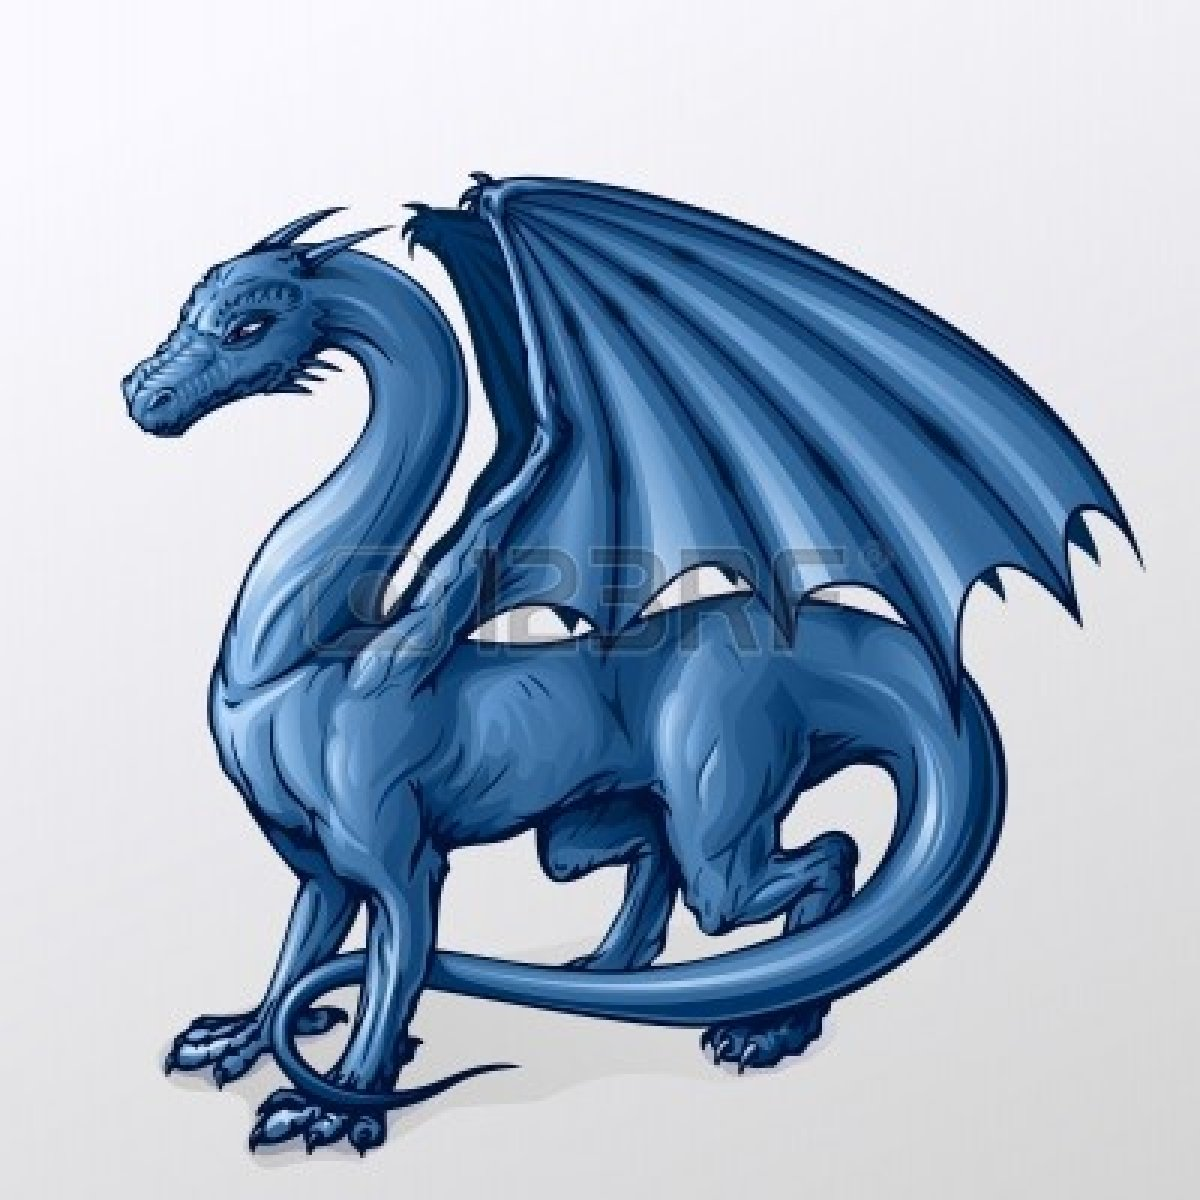 blue dragon drawing at getdrawings com free for personal use blue